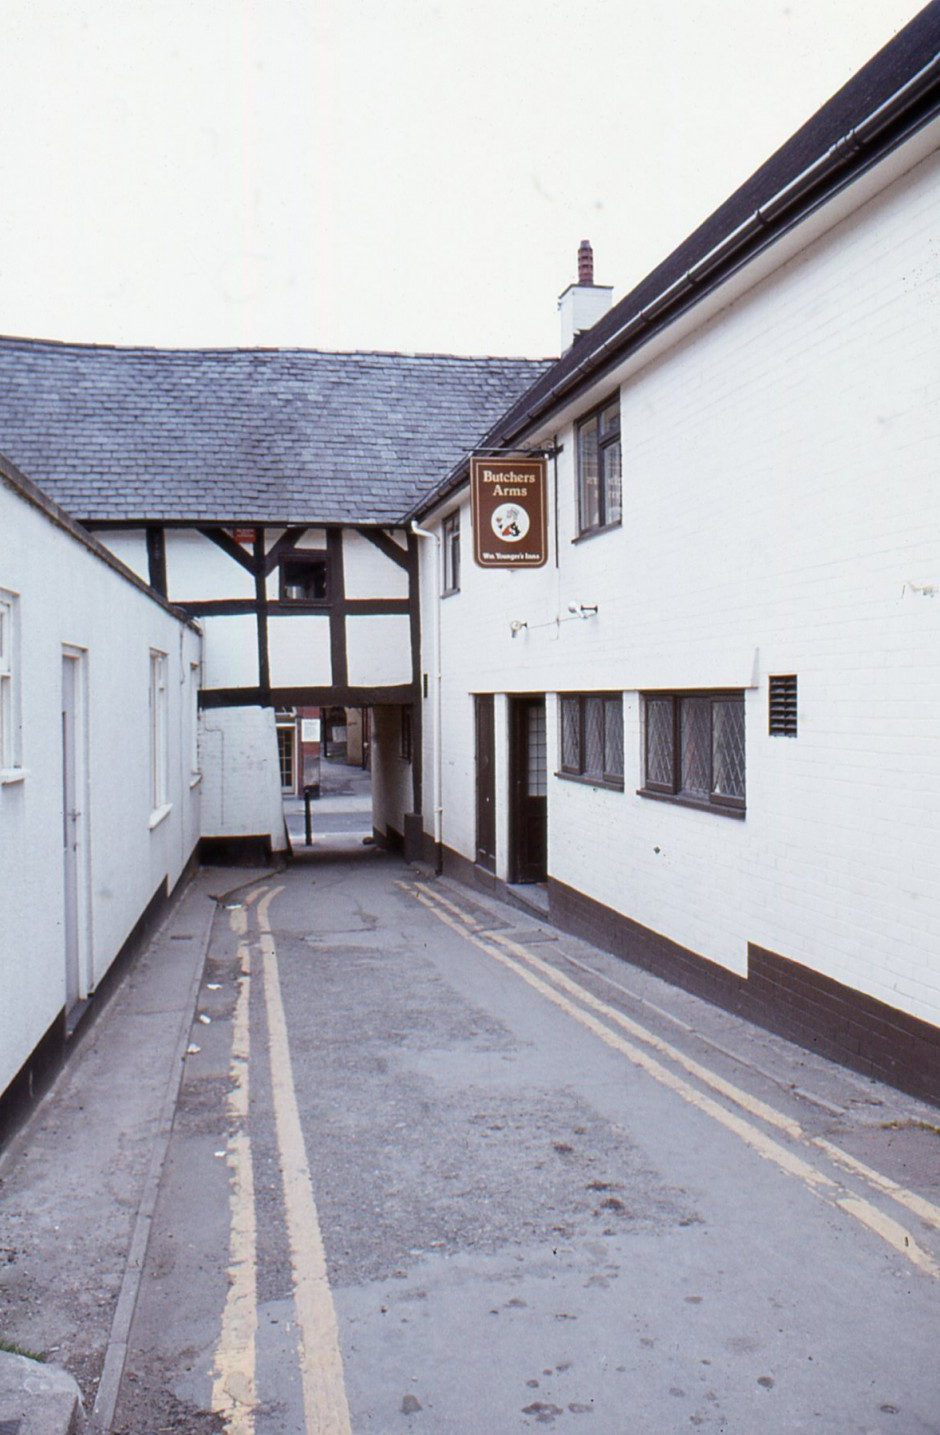 SL-O-5-23-21 Oswestry - Arthur Street - View towards Willow St, Butchers Arms